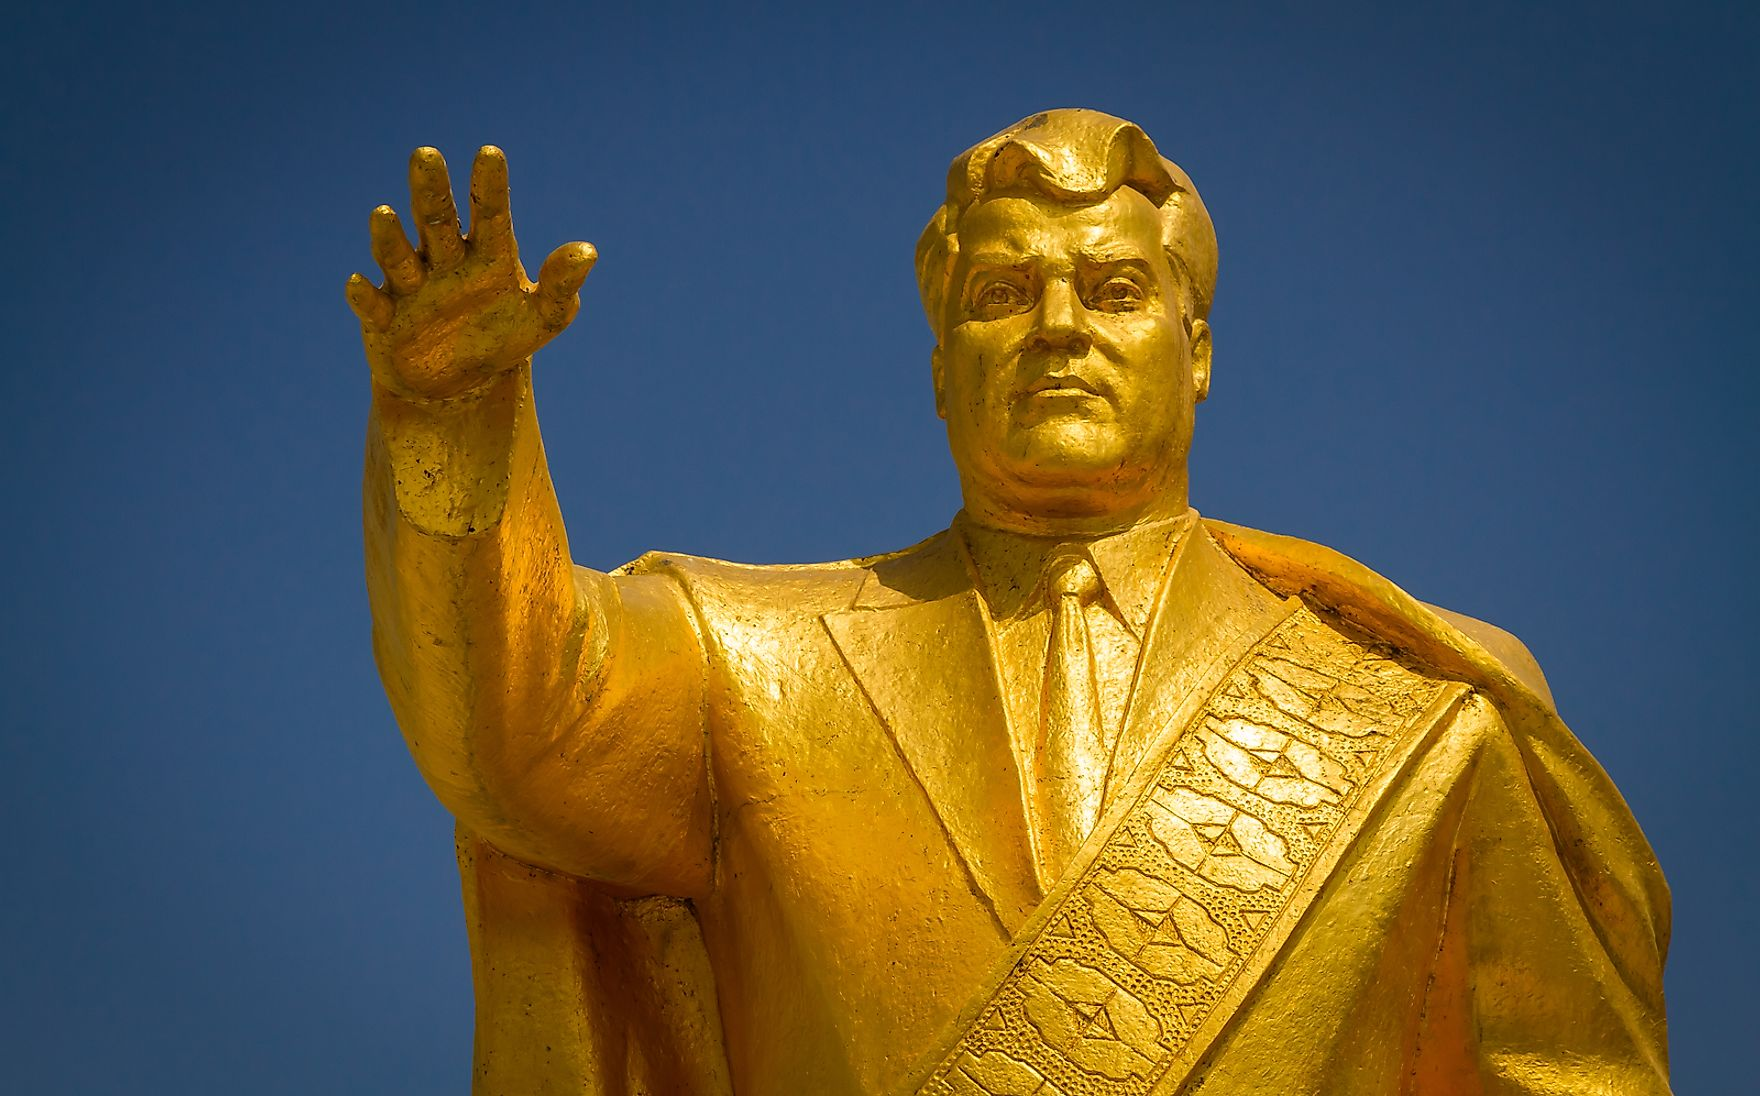 This may be surprising, but Niyazov fancied statues of himself, particularly in gold. Jakub Buza / Shutterstock.com.